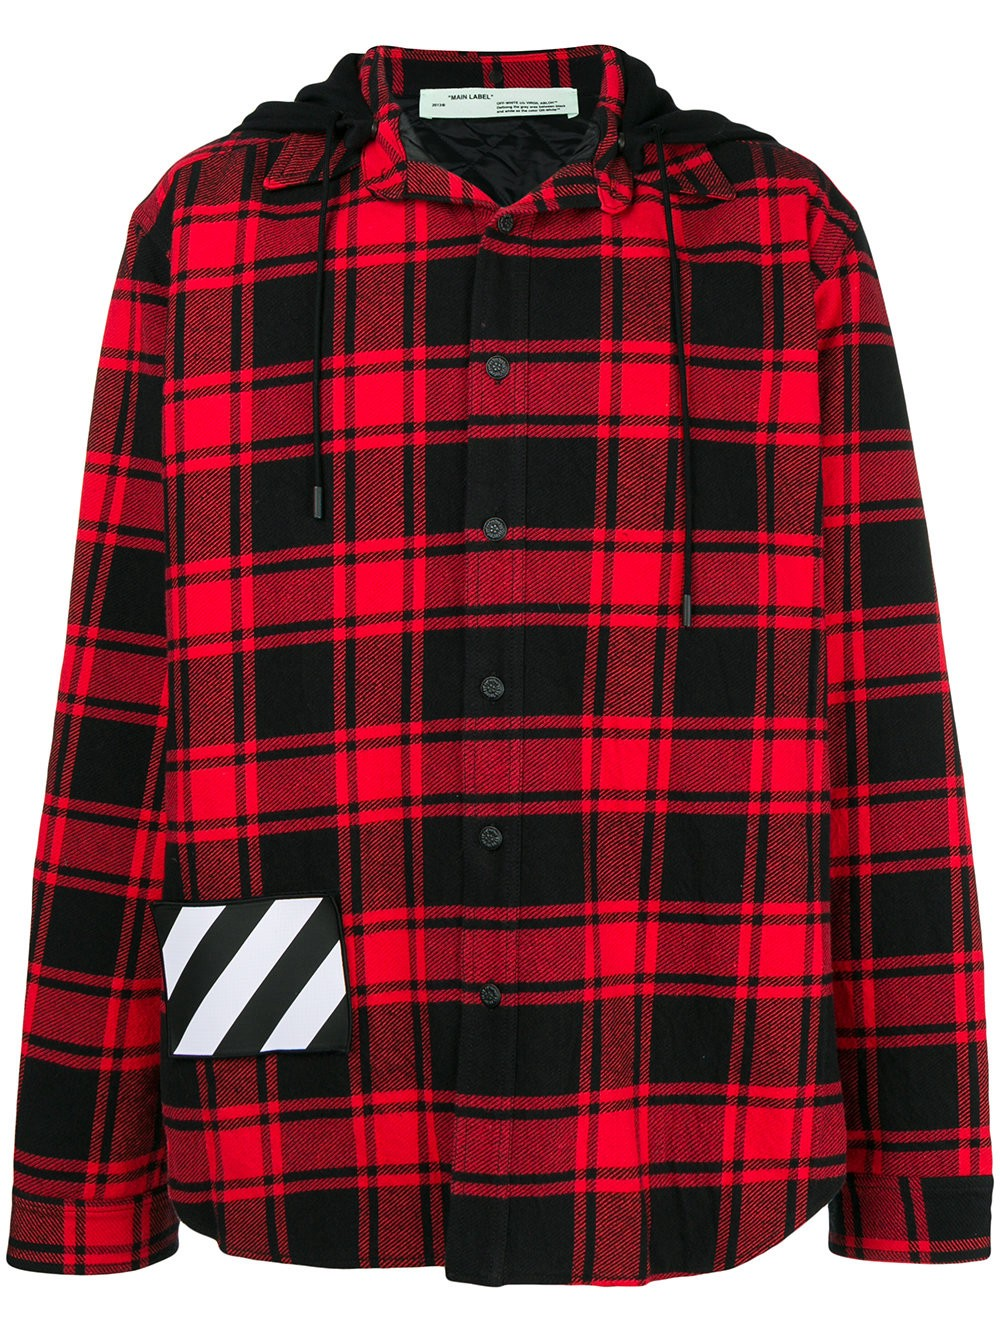 Flannel jackets with hood  HOODED CHECKED FLANNEL JACKET by OffWhite  I wish list